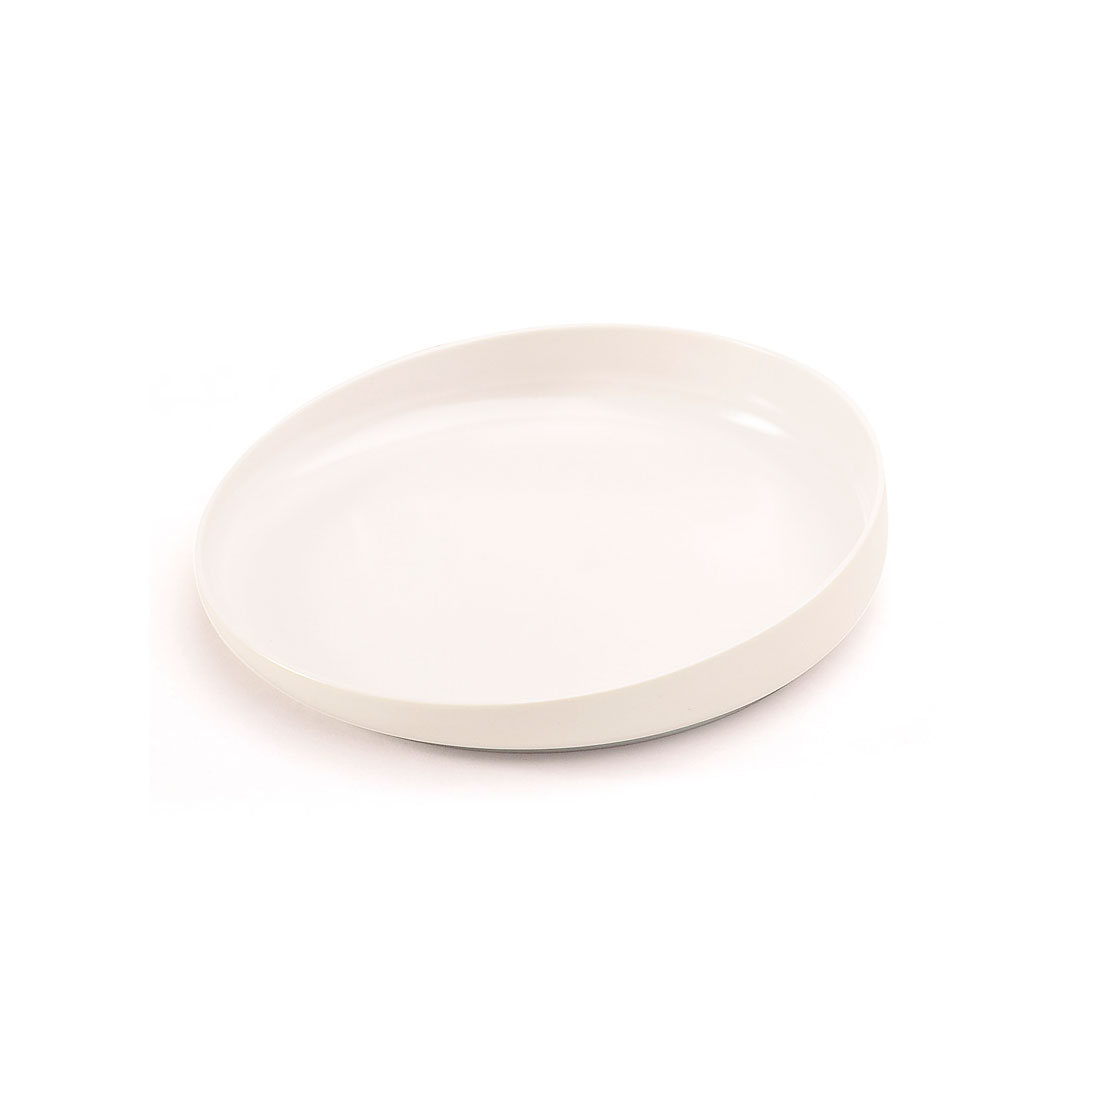 Plate With Raised Edge